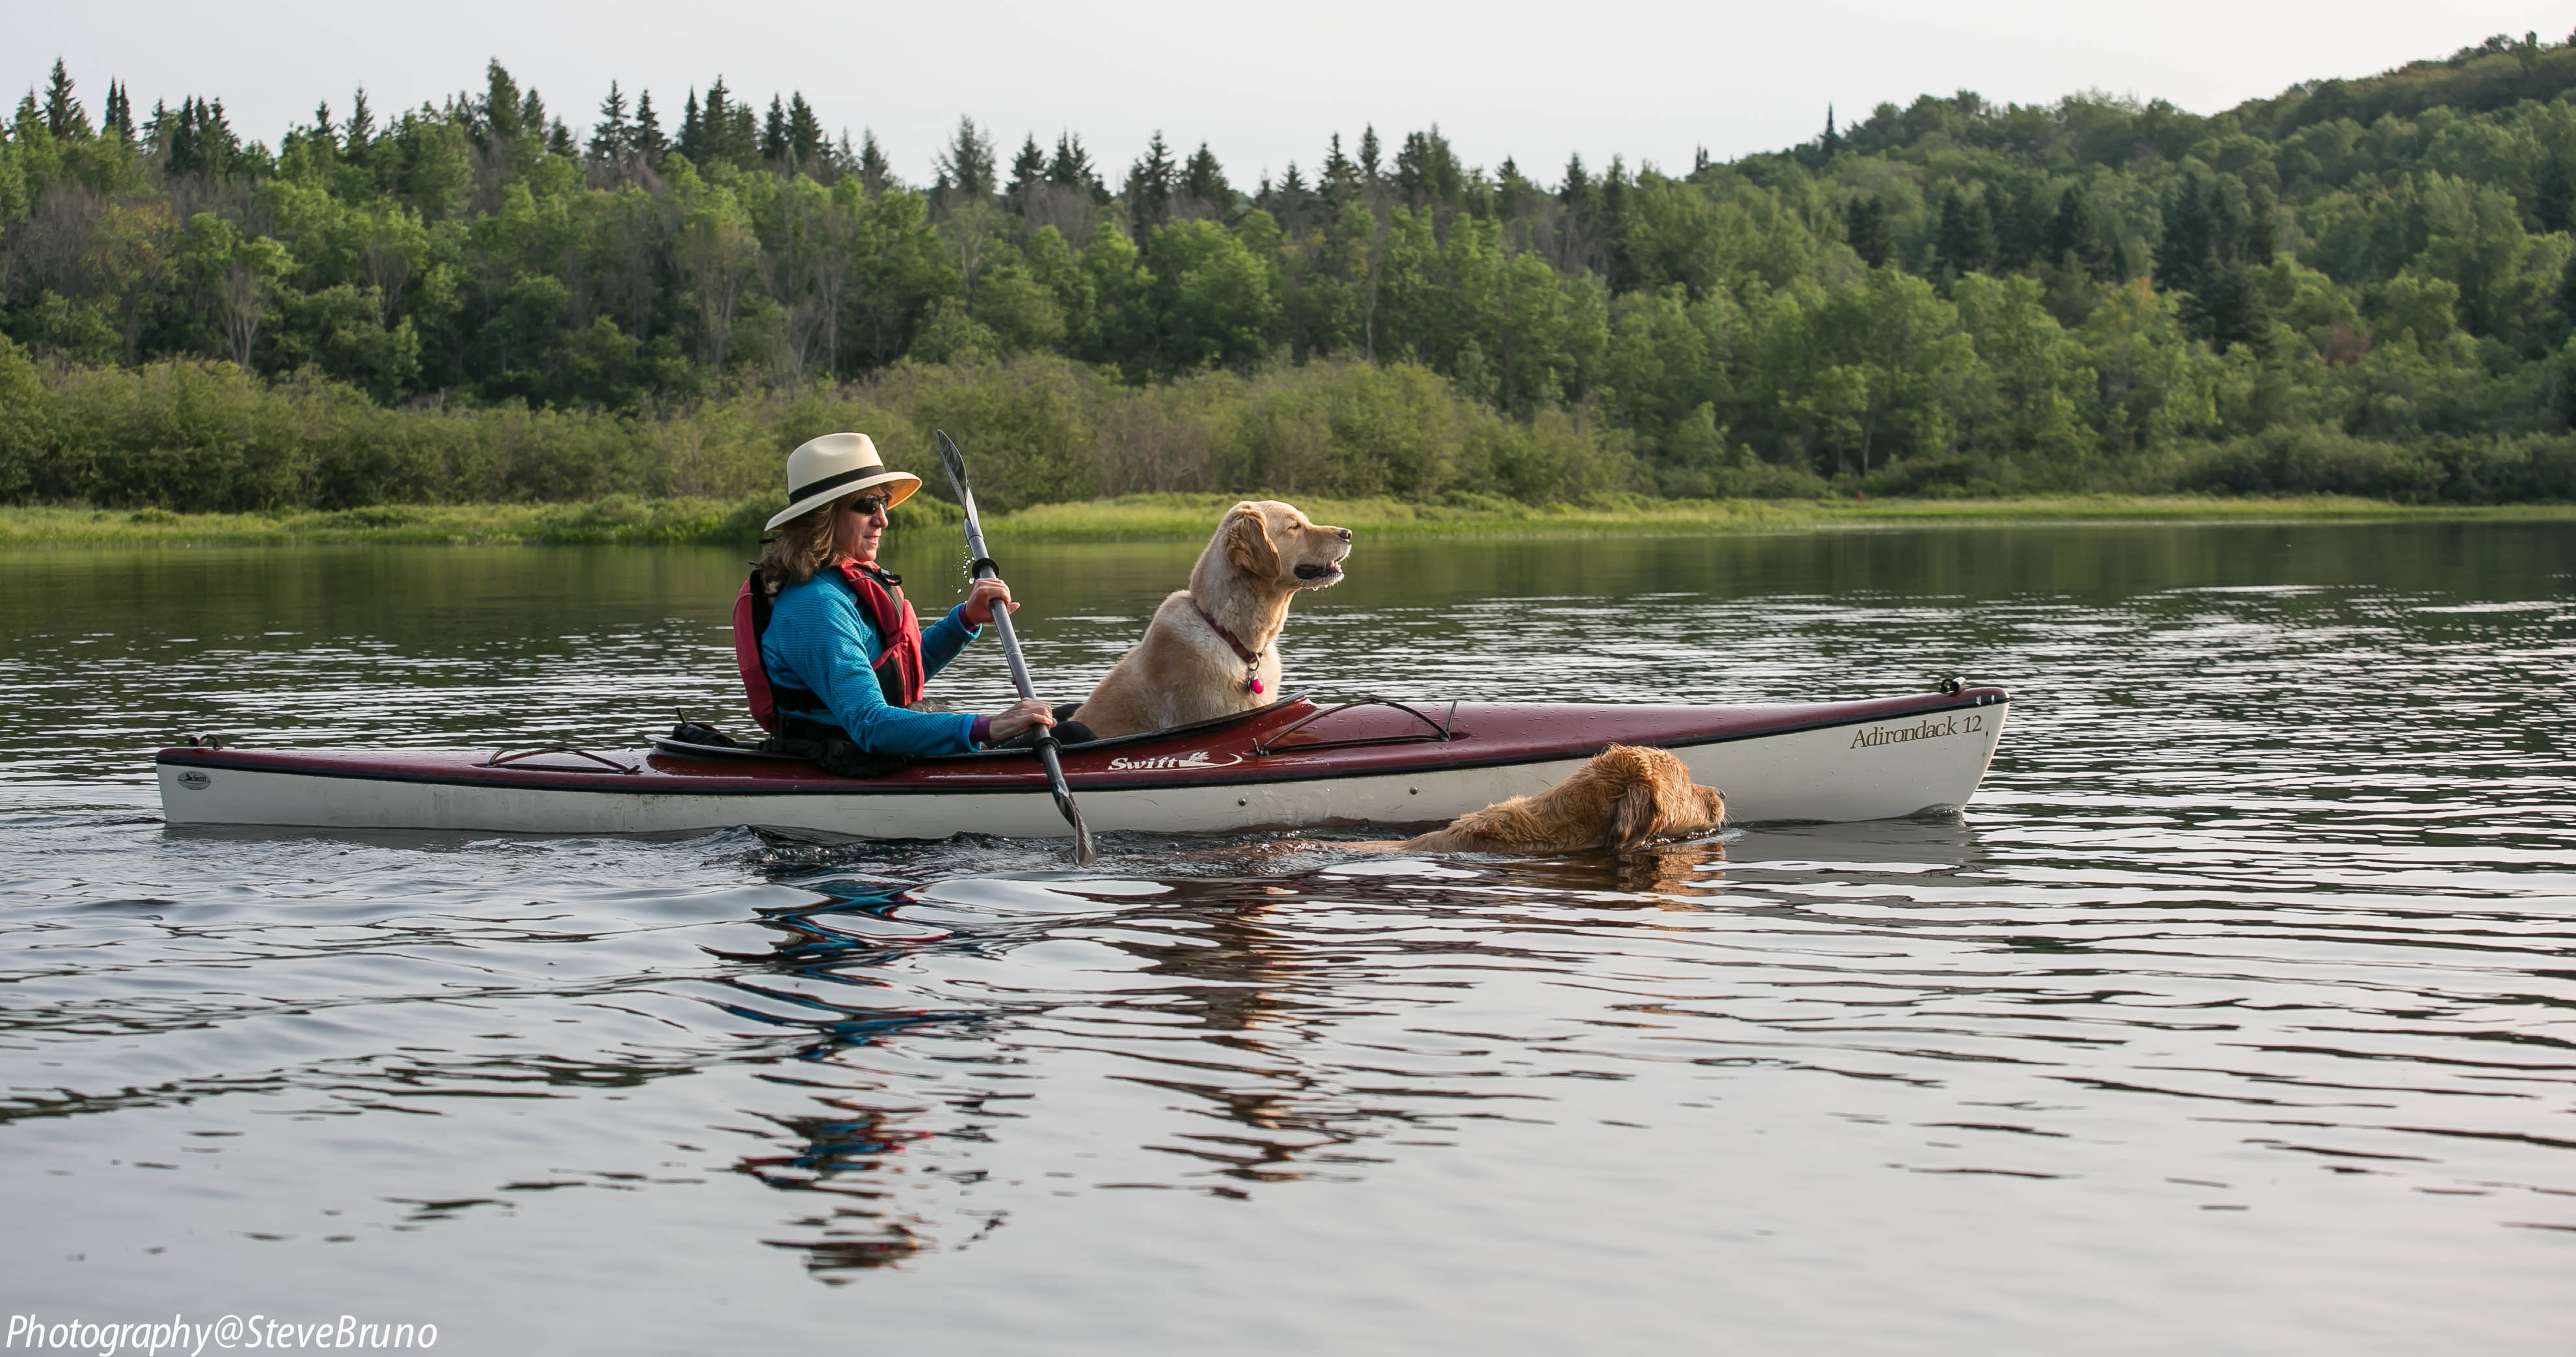 Arrowhead Provincial Park  has a large pet exercise area with two beautiful beaches where your dog can swim and play (or go kayaking).